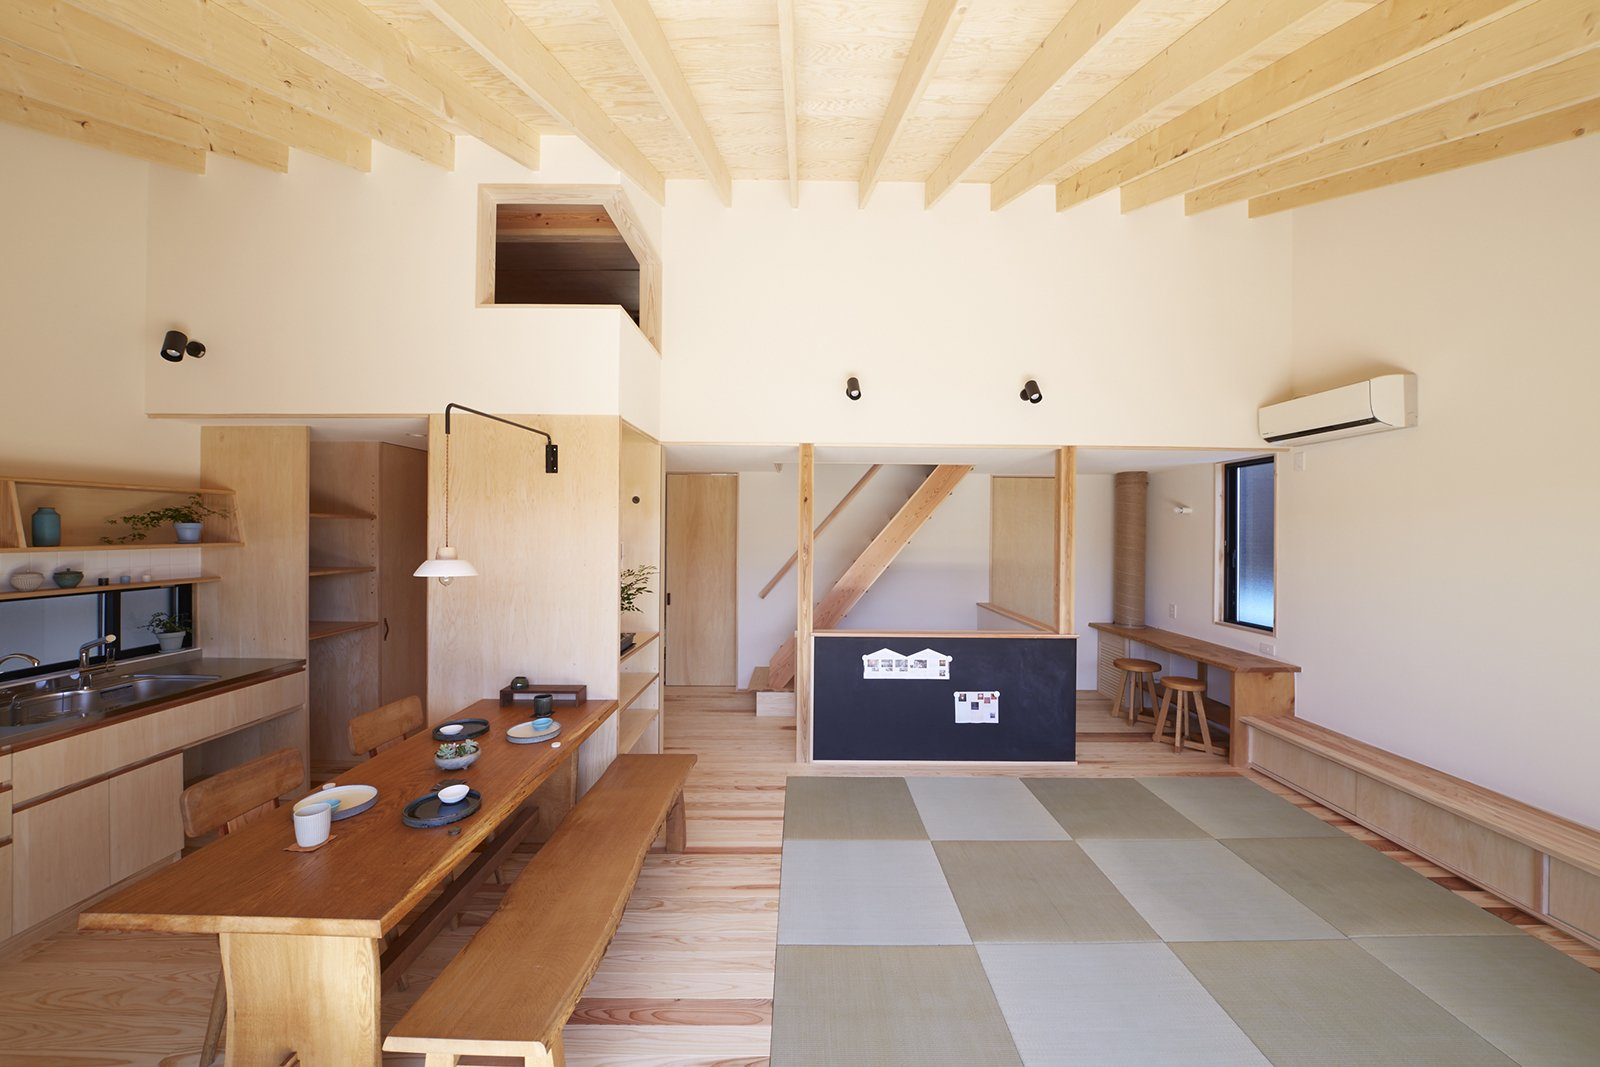 The tatami mats are a favorite play space for Takuma .  Yanagisaki House by Caroline Wallis from House of the Week: This Japanese Gem Has Some Serious Storage Tricks Up its Sleeve